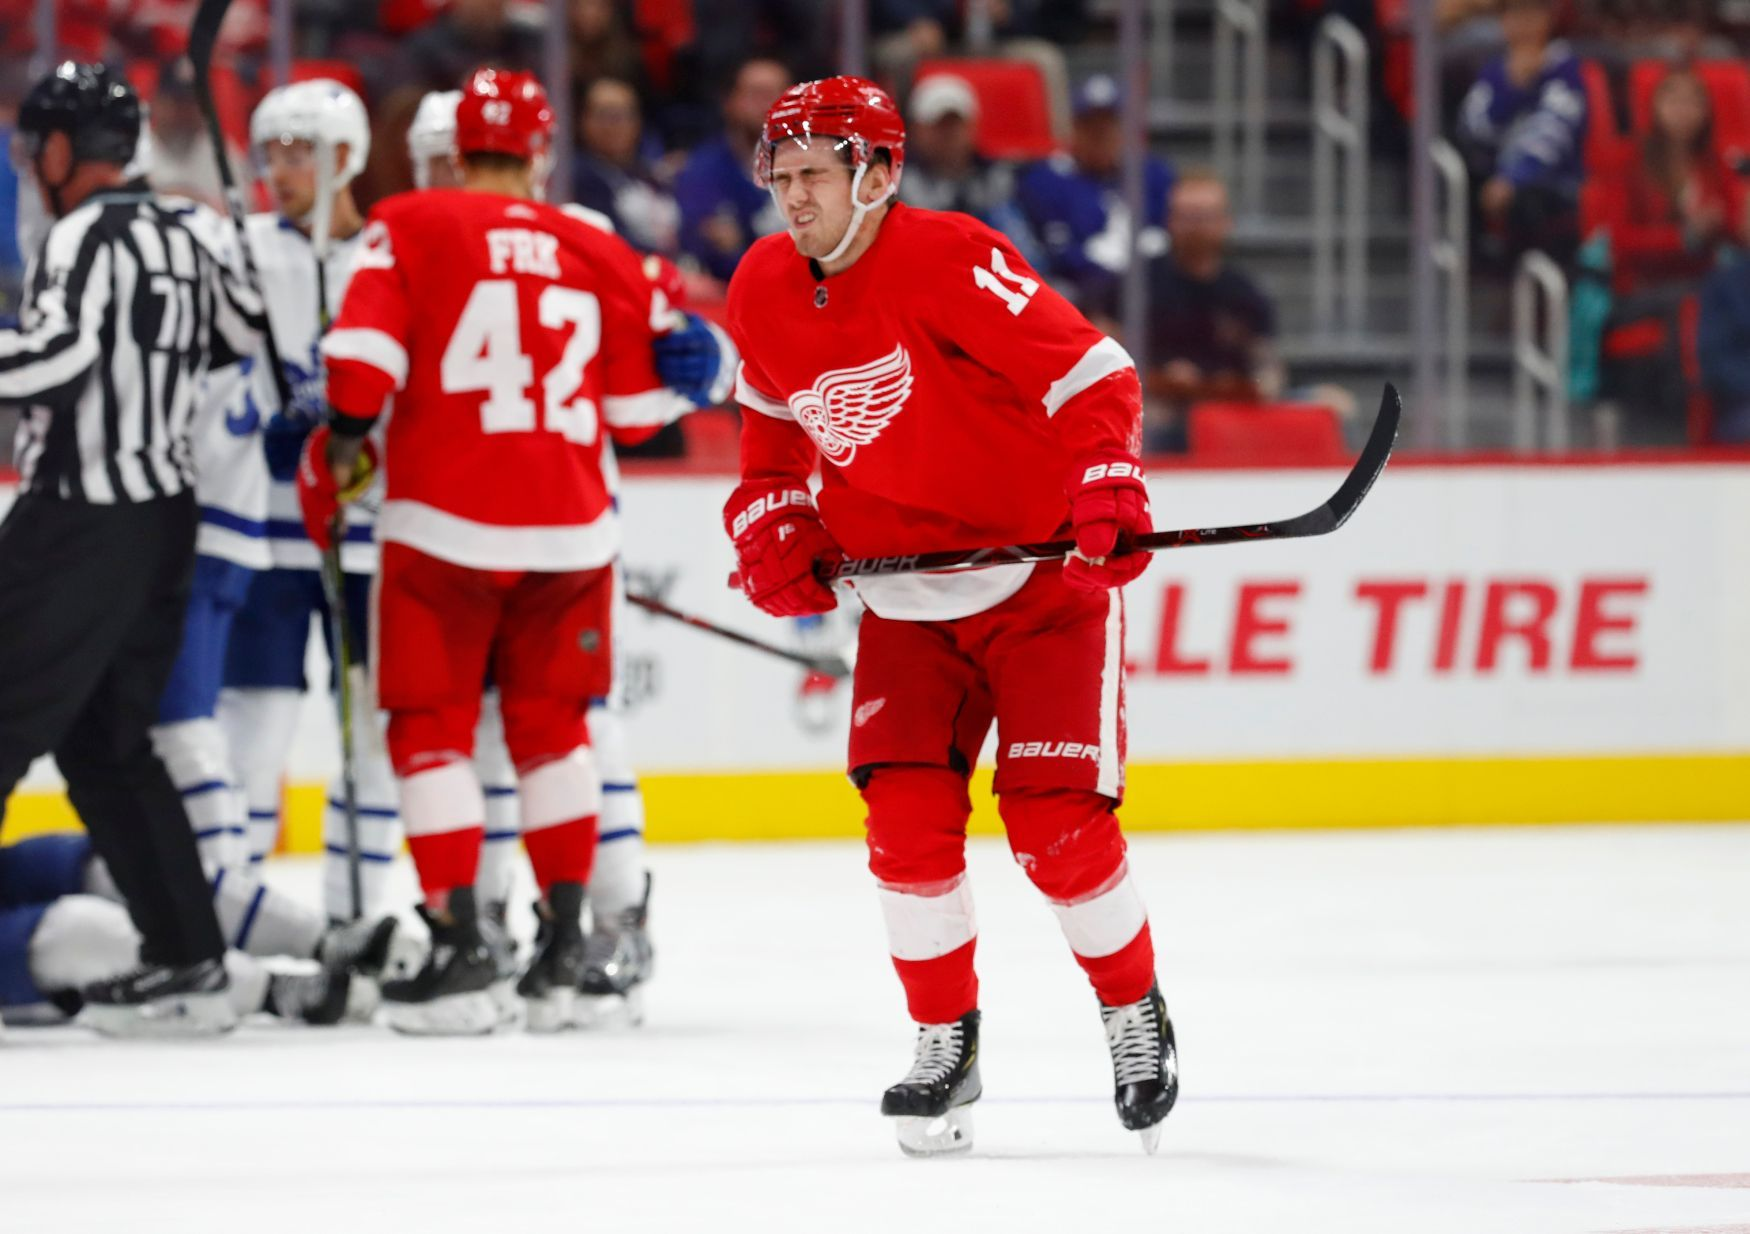 NHL 2018/19, Detroit Red Wings, Filip Zadina